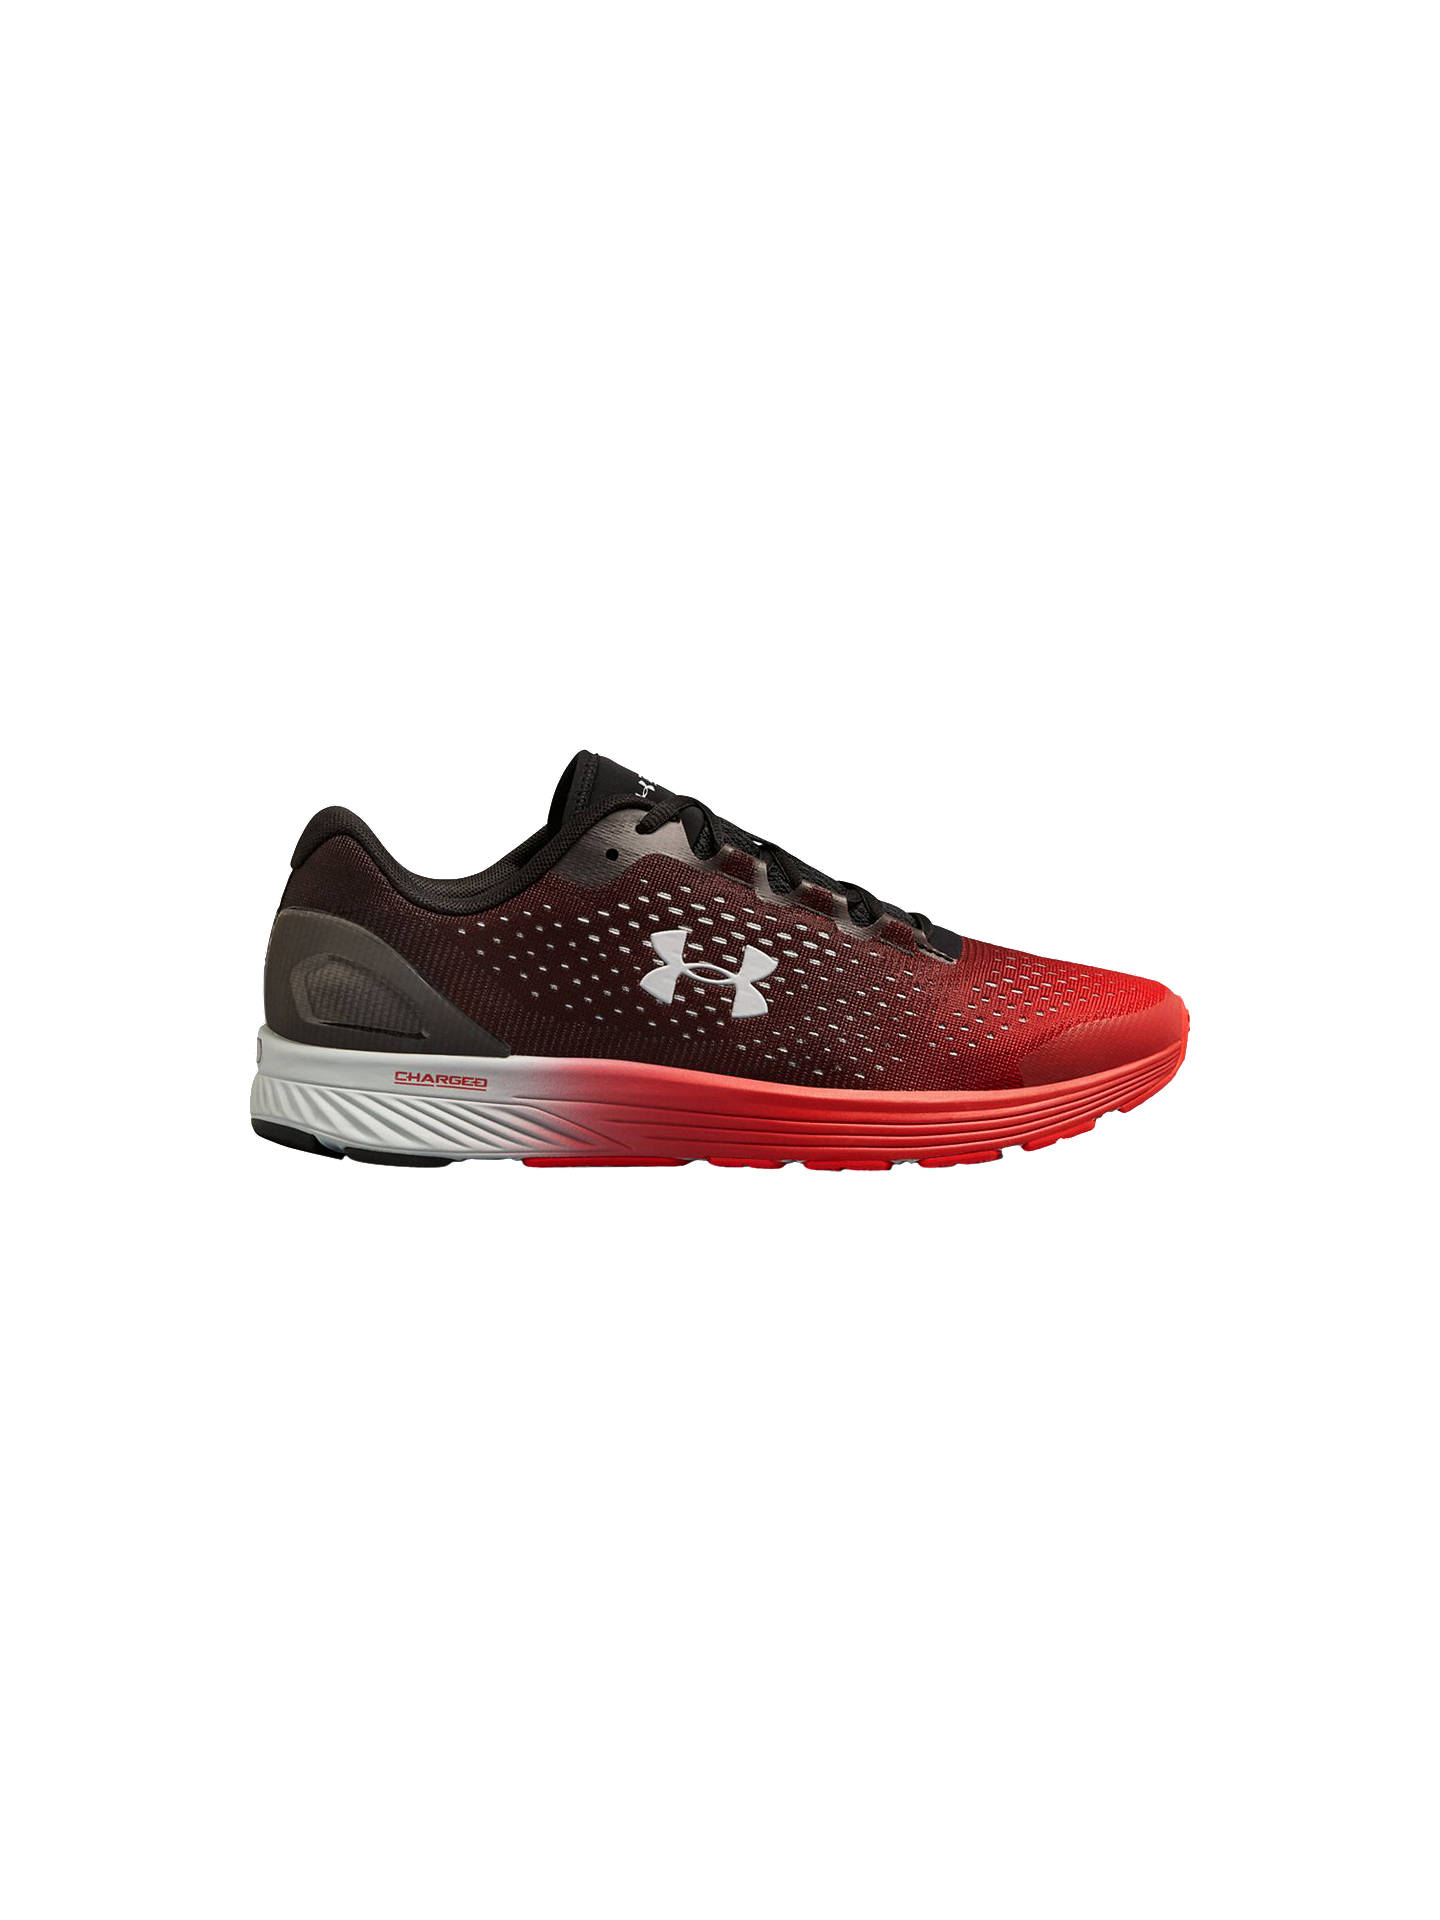 save off 3e210 cd8d3 Under Armour Charged Bandit 4 Men's Running Shoes, Black/Red ...